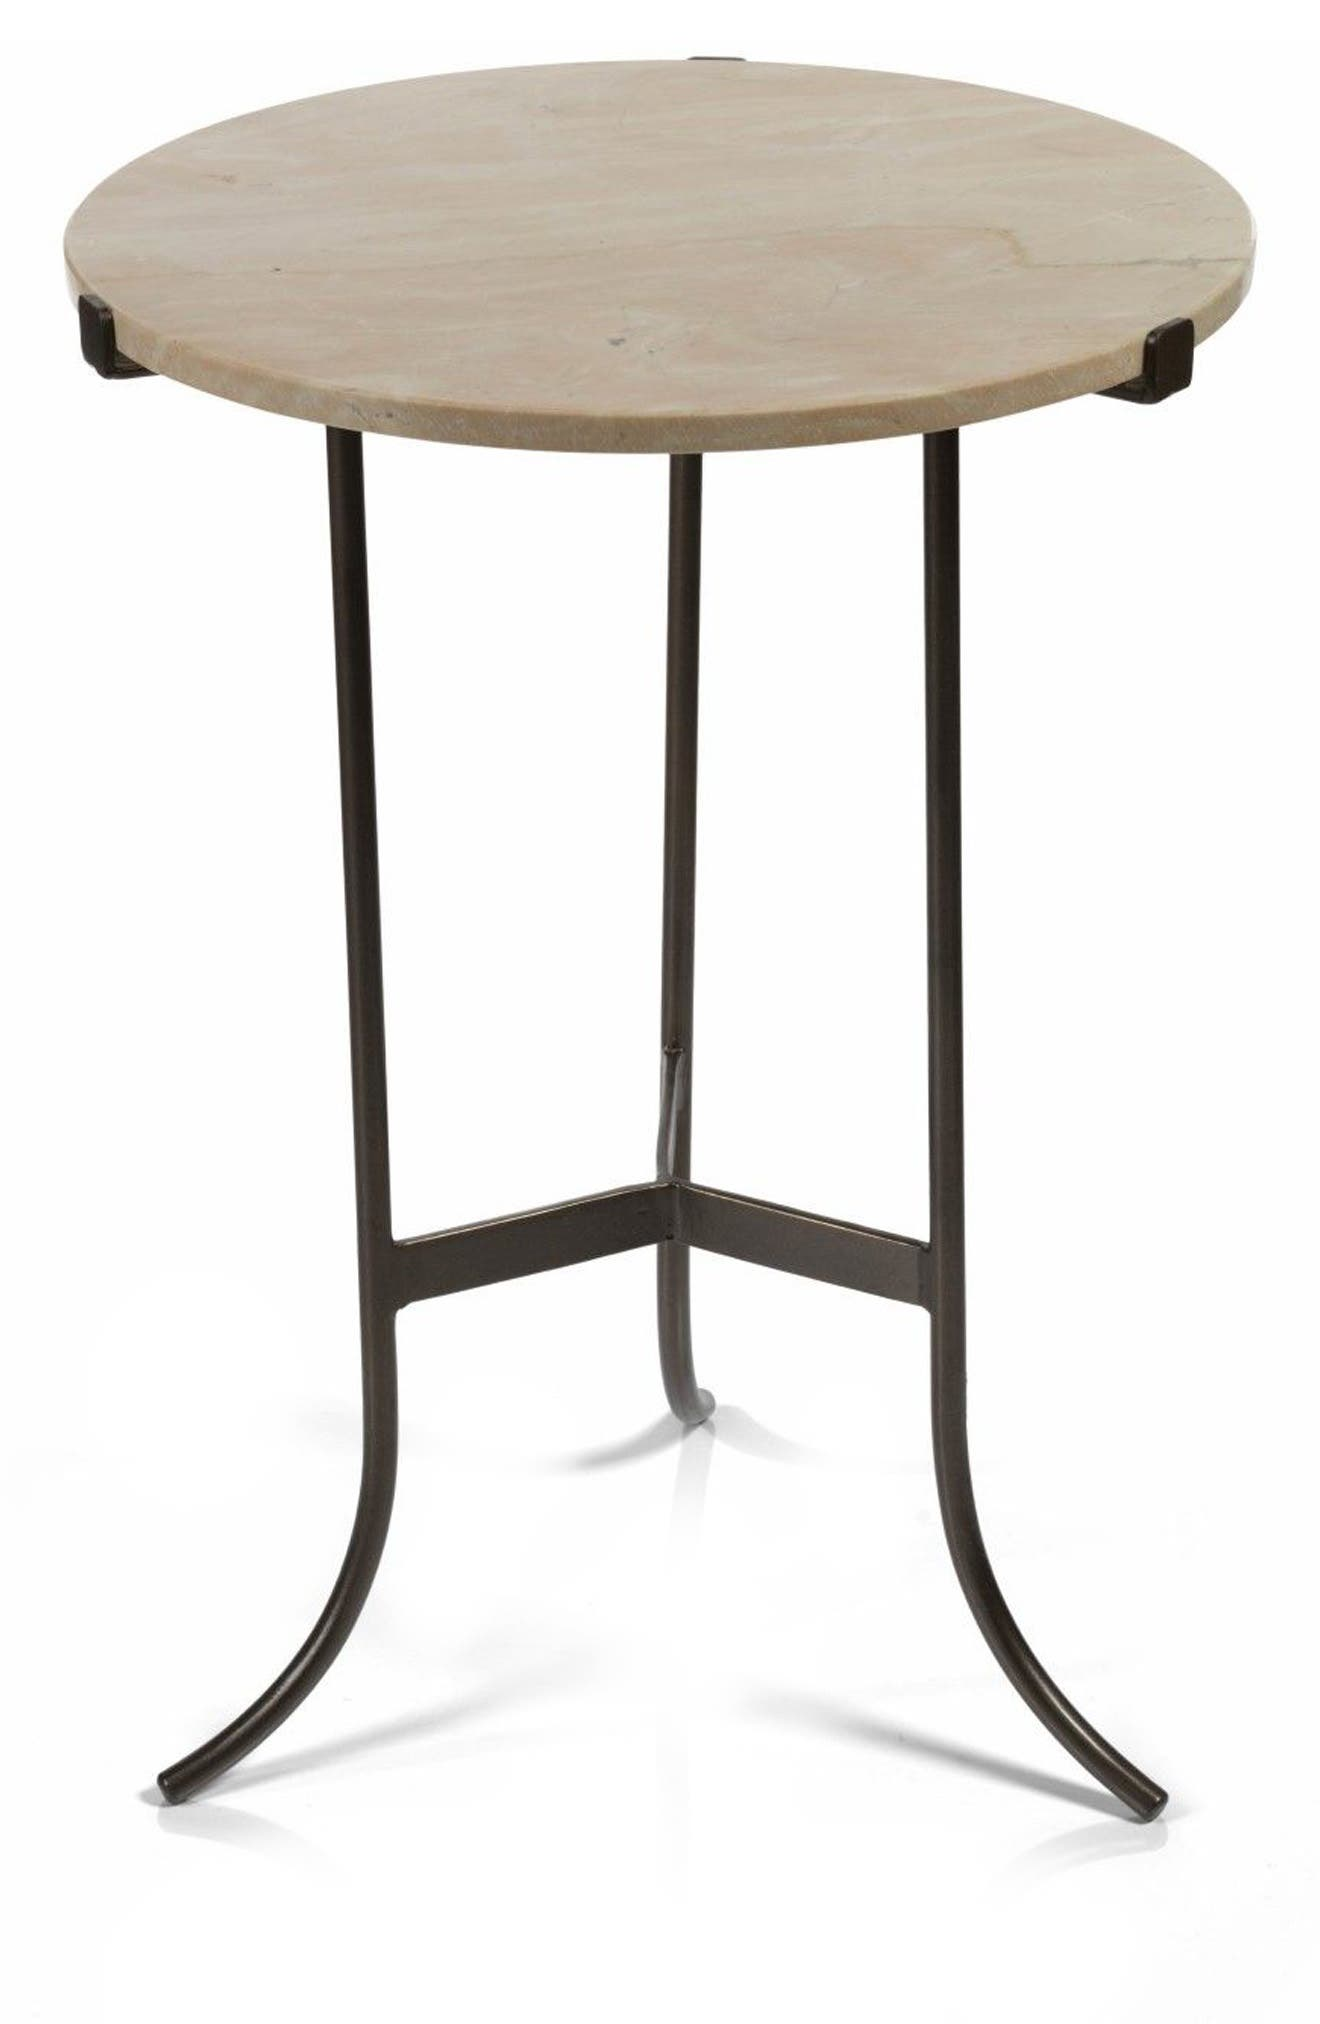 Main Image - Zodax Mimouna Marble Top Indoor/Outdoor Side Table